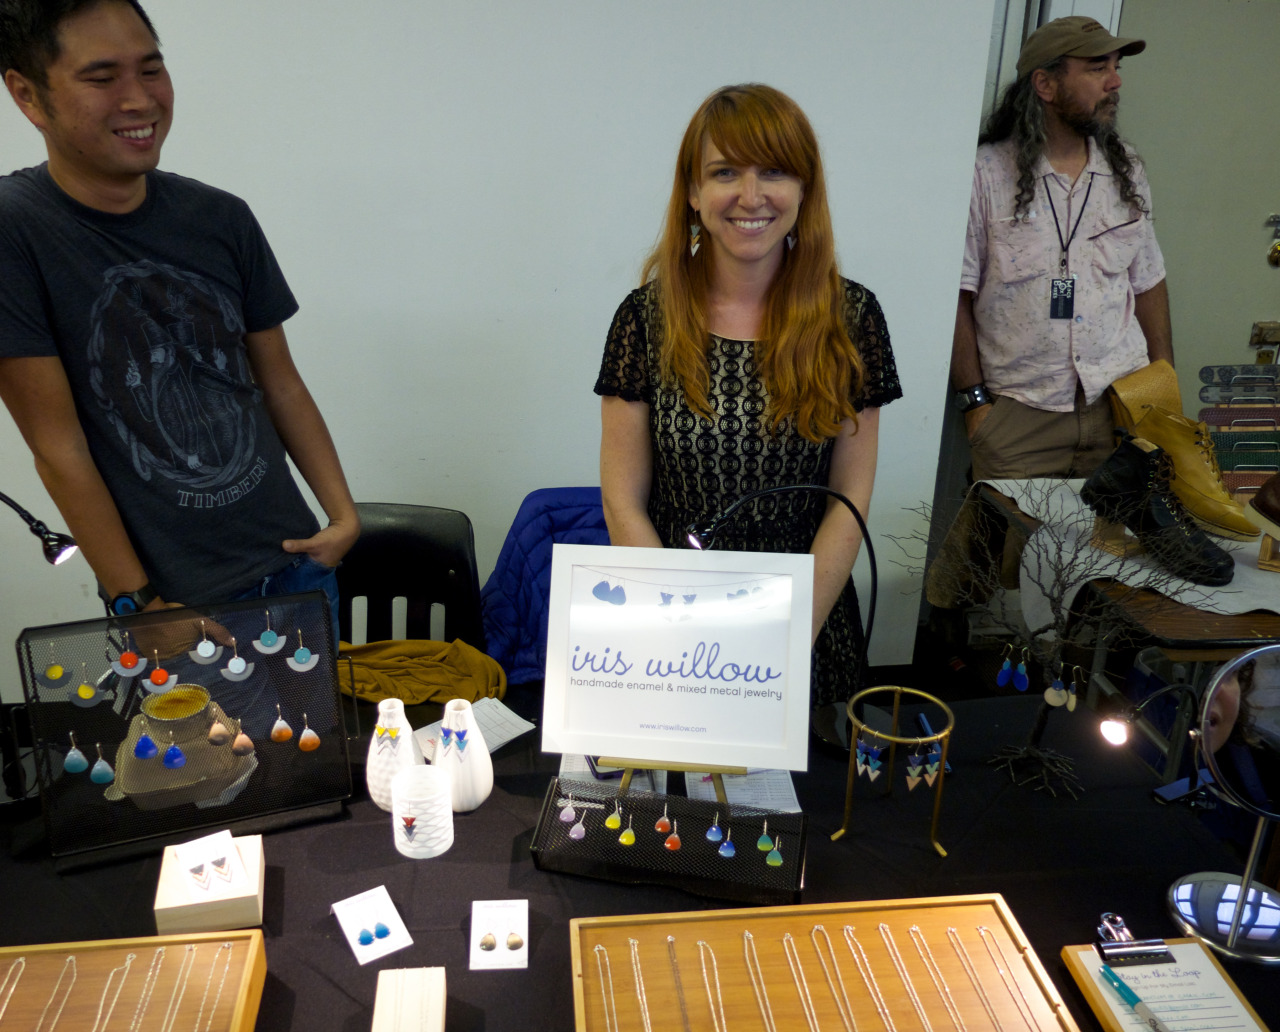 I had a super fun time at the Storefront Showcase at Fort Mason last night. Thanks  Daniel Bogan  for capturing this photo of my table. Big thanks to all my friends that stopped by to say hi.